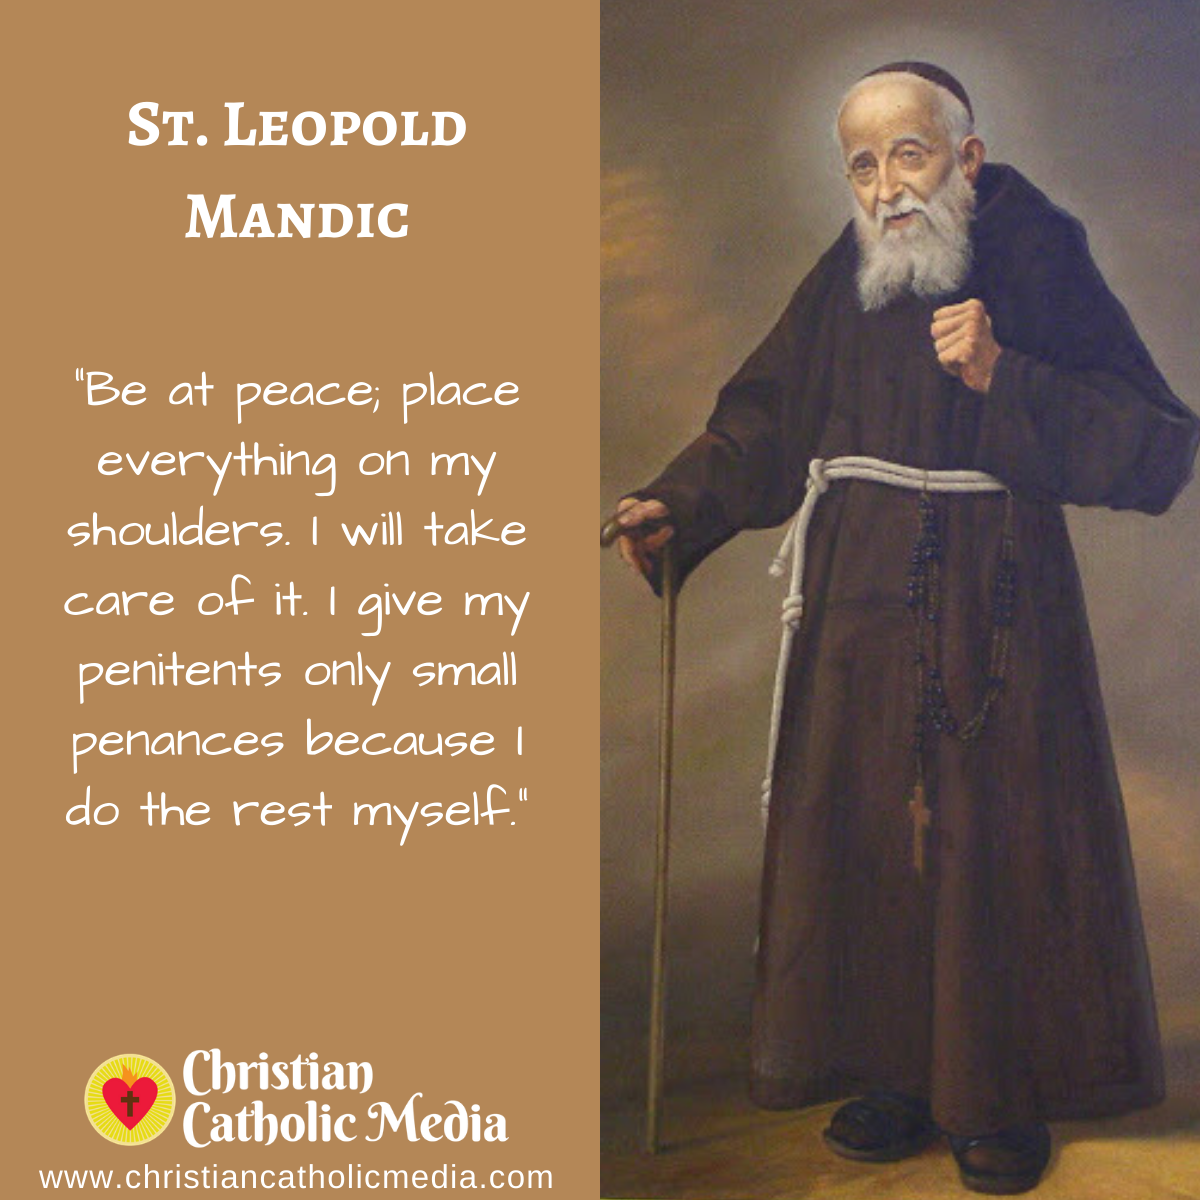 St. Leopold Mandic - Tuesday May 12, 2020